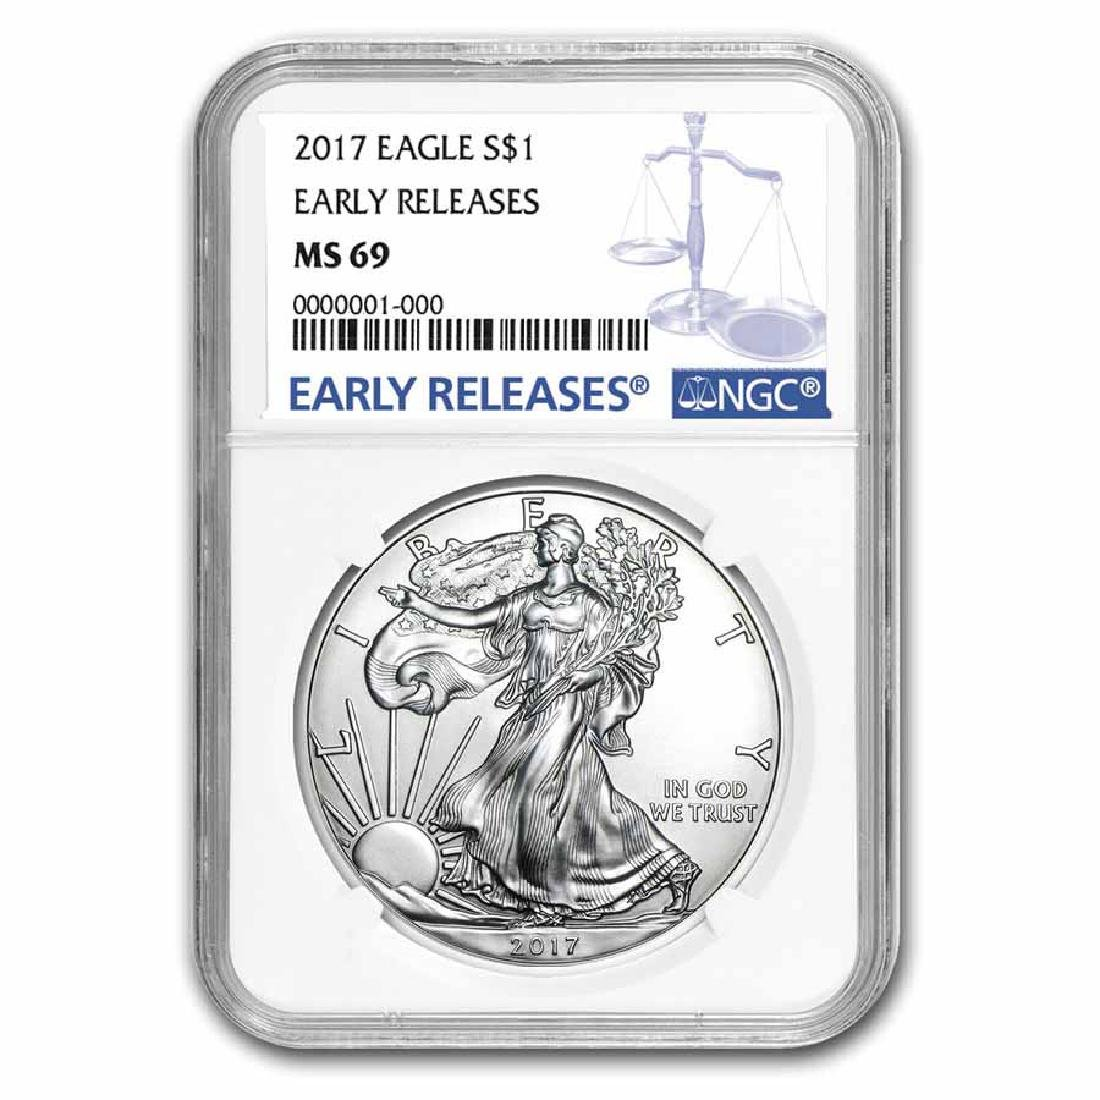 Certified Uncirculated Silver Eagle 2017 MS69 NGC Early